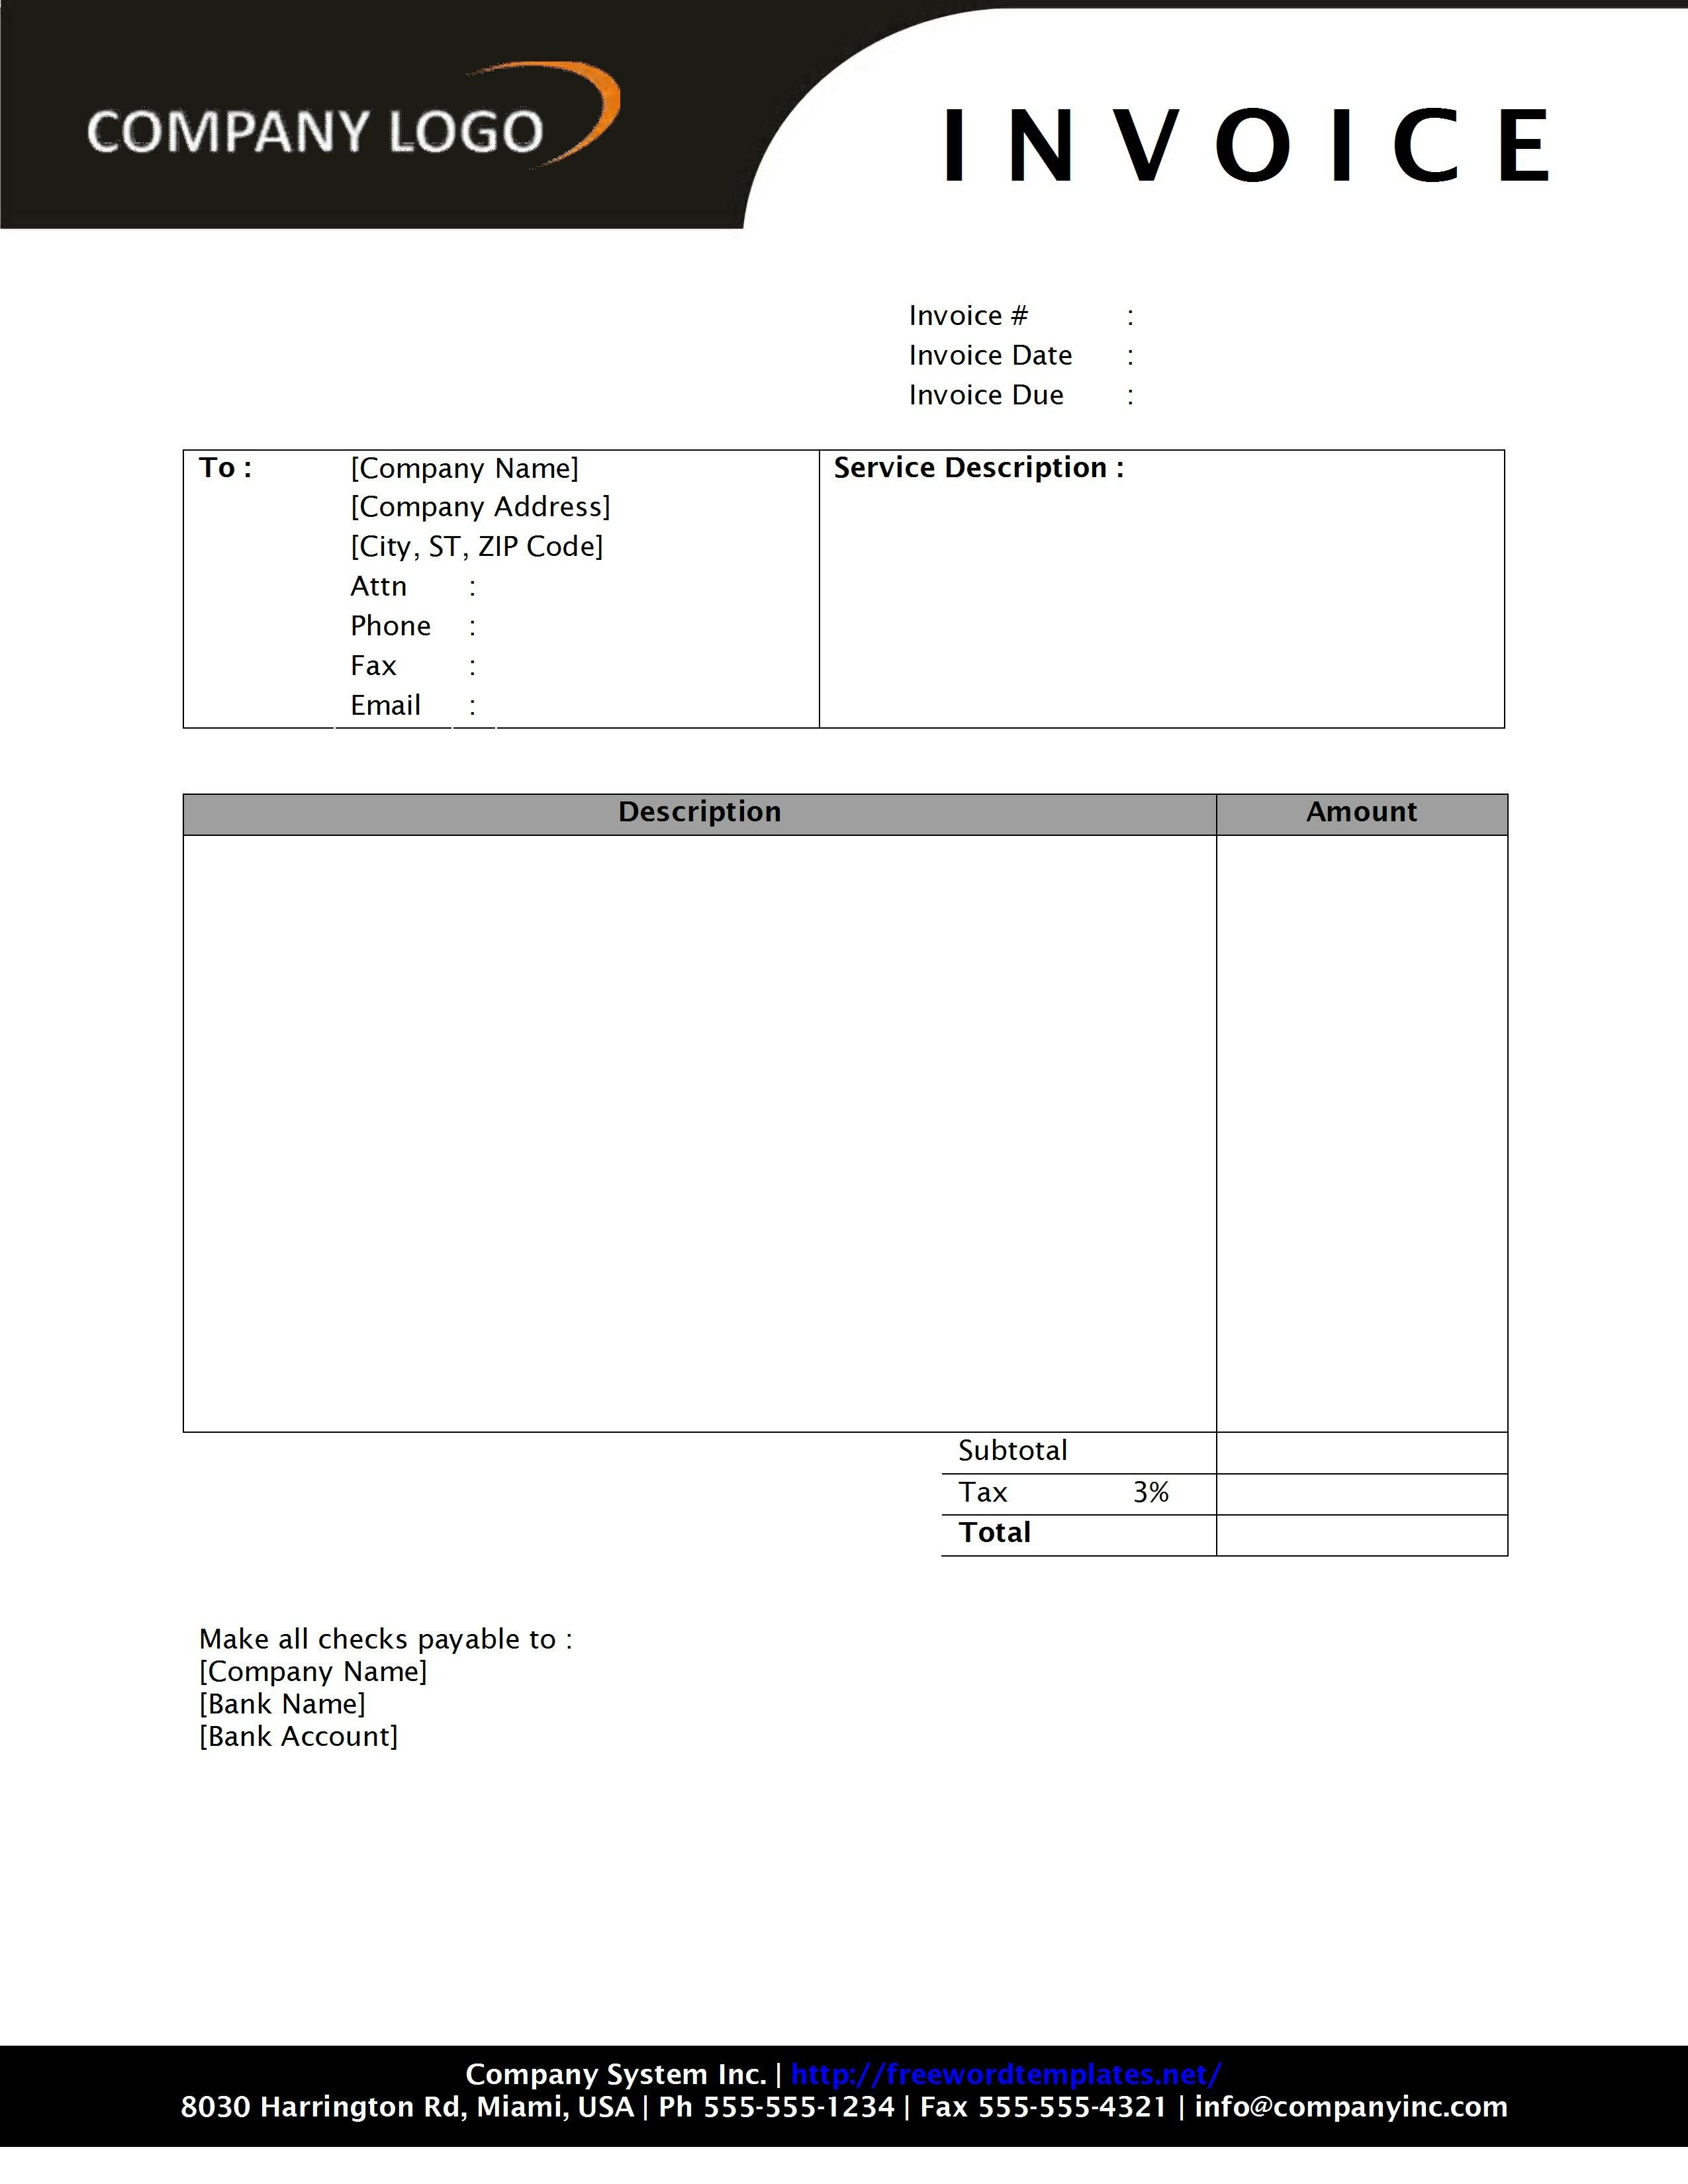 Microsoft Word Invoice Template Free Invoice Template Word 2010